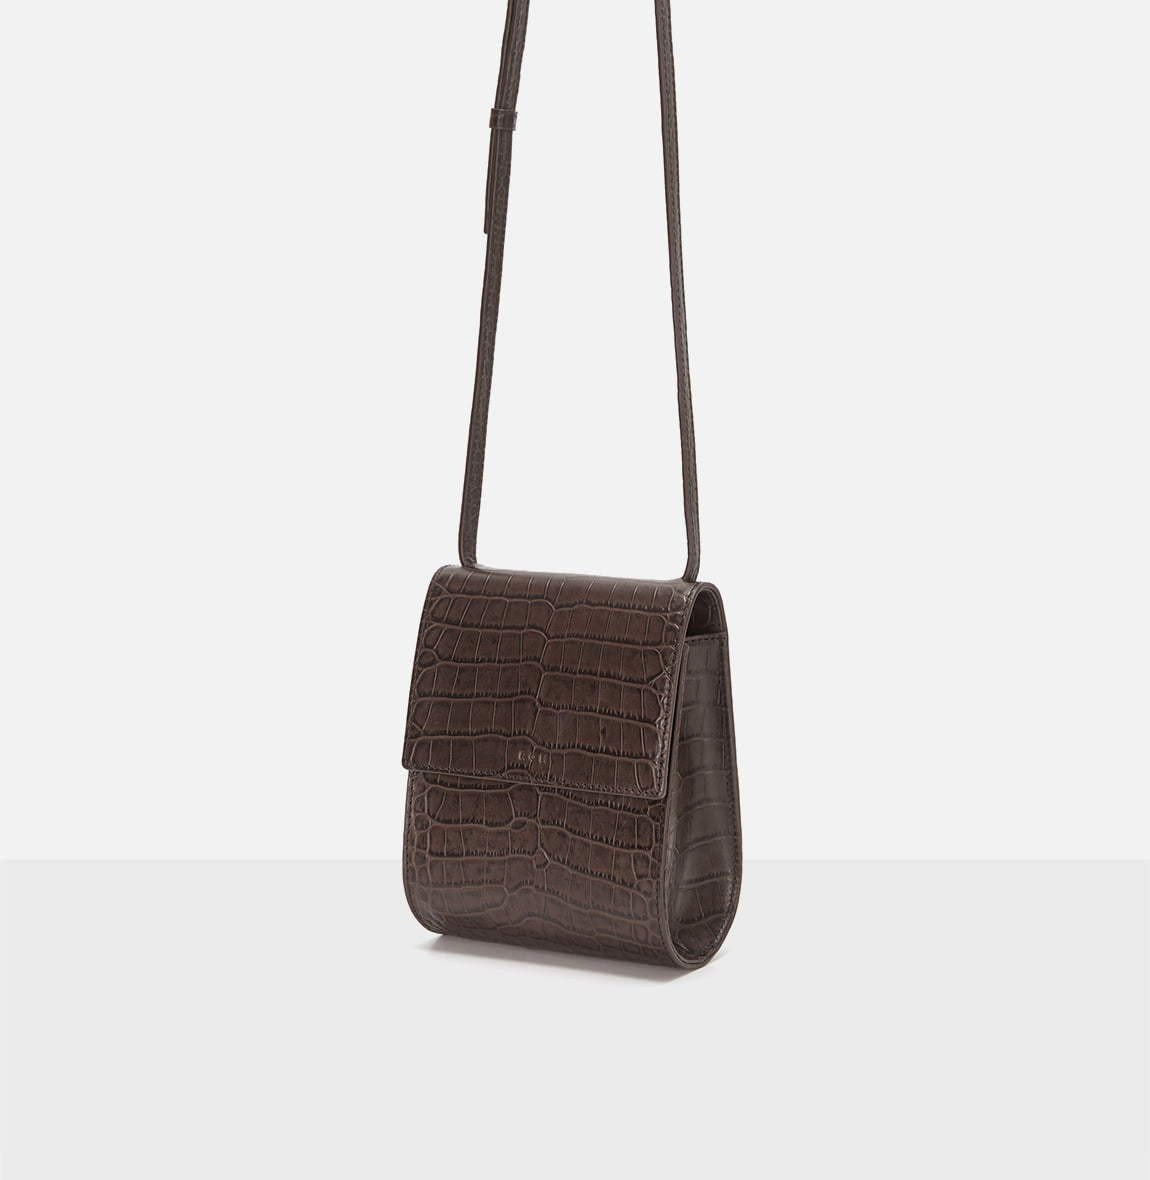 Pochette crossbody bag Umber Crocodile pattern